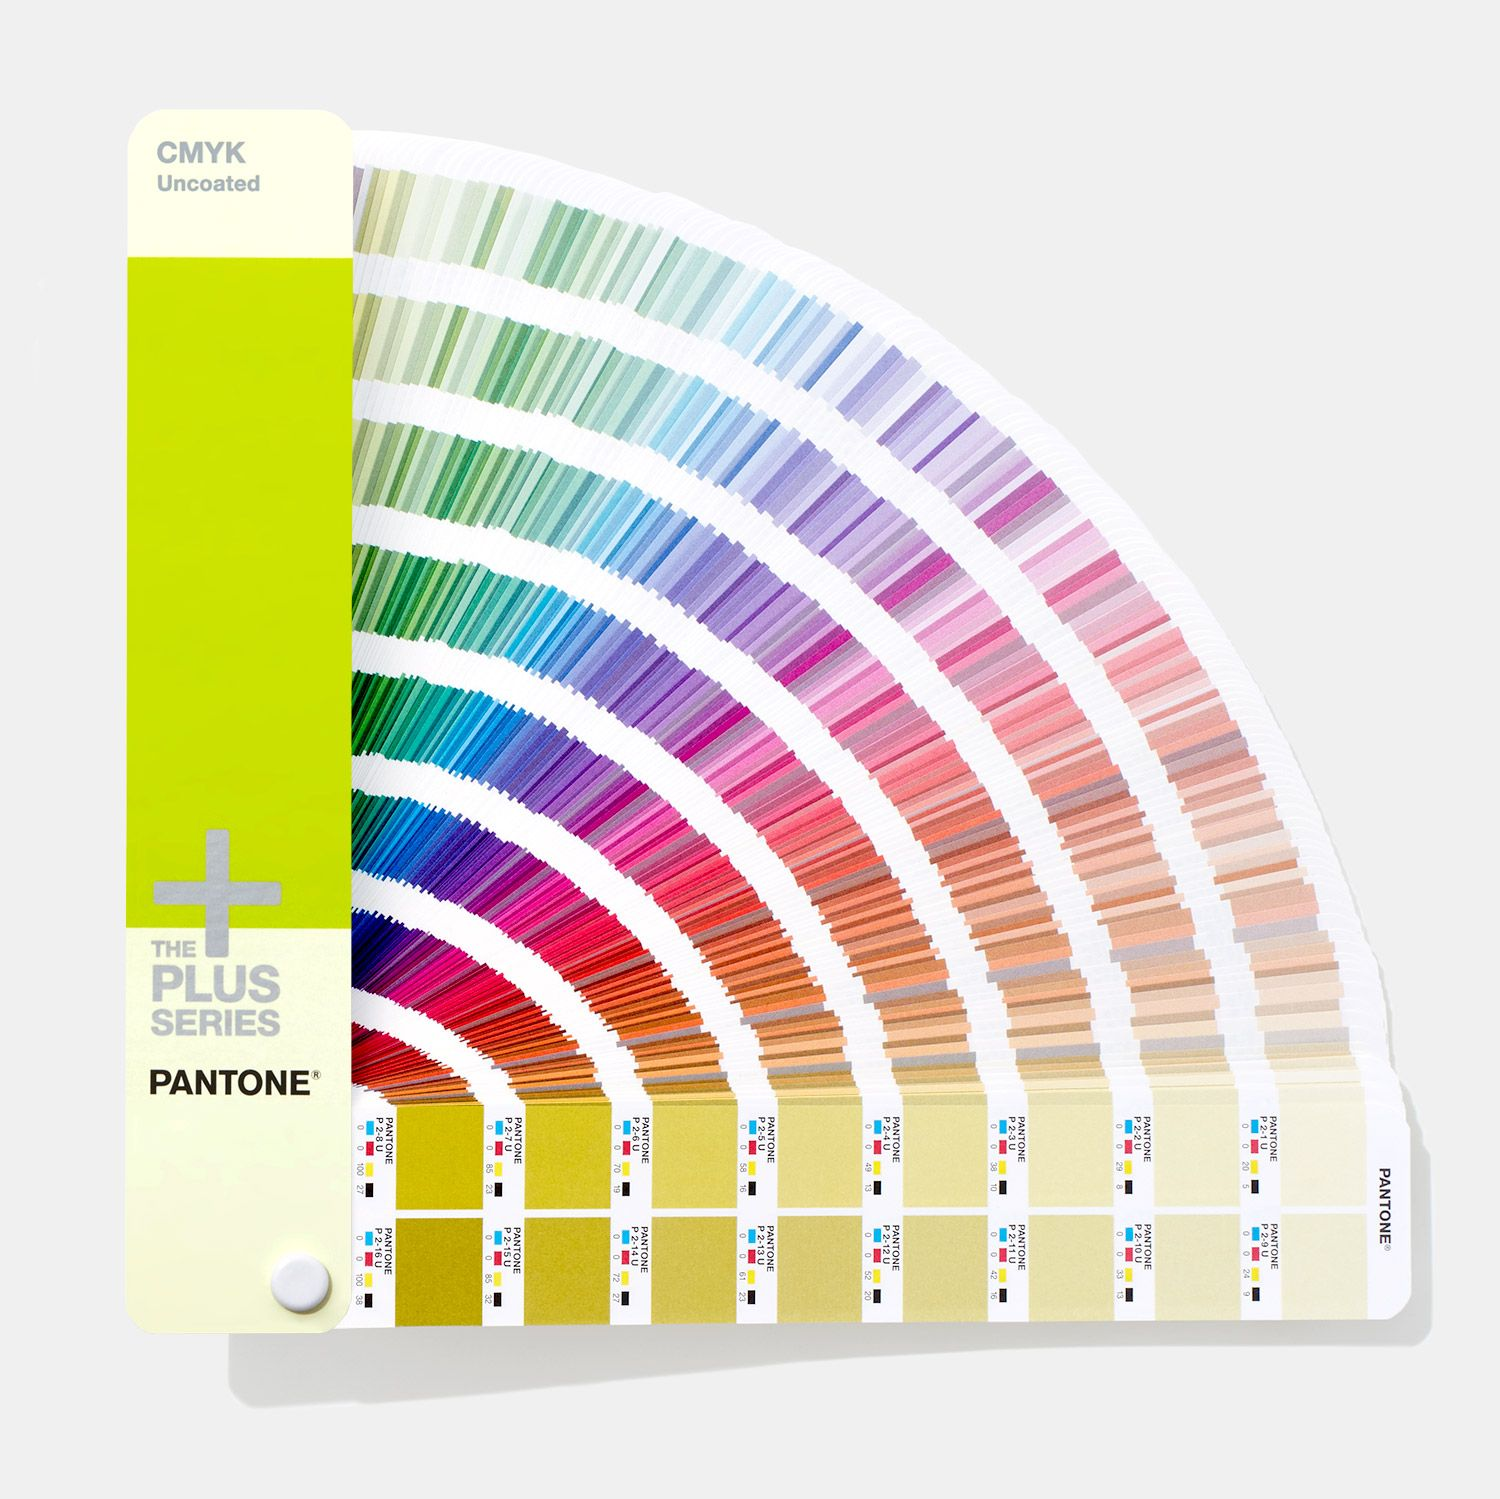 cmyk coated uncoated in 2020 pantone color guide mixing cool grey 1 pms 121